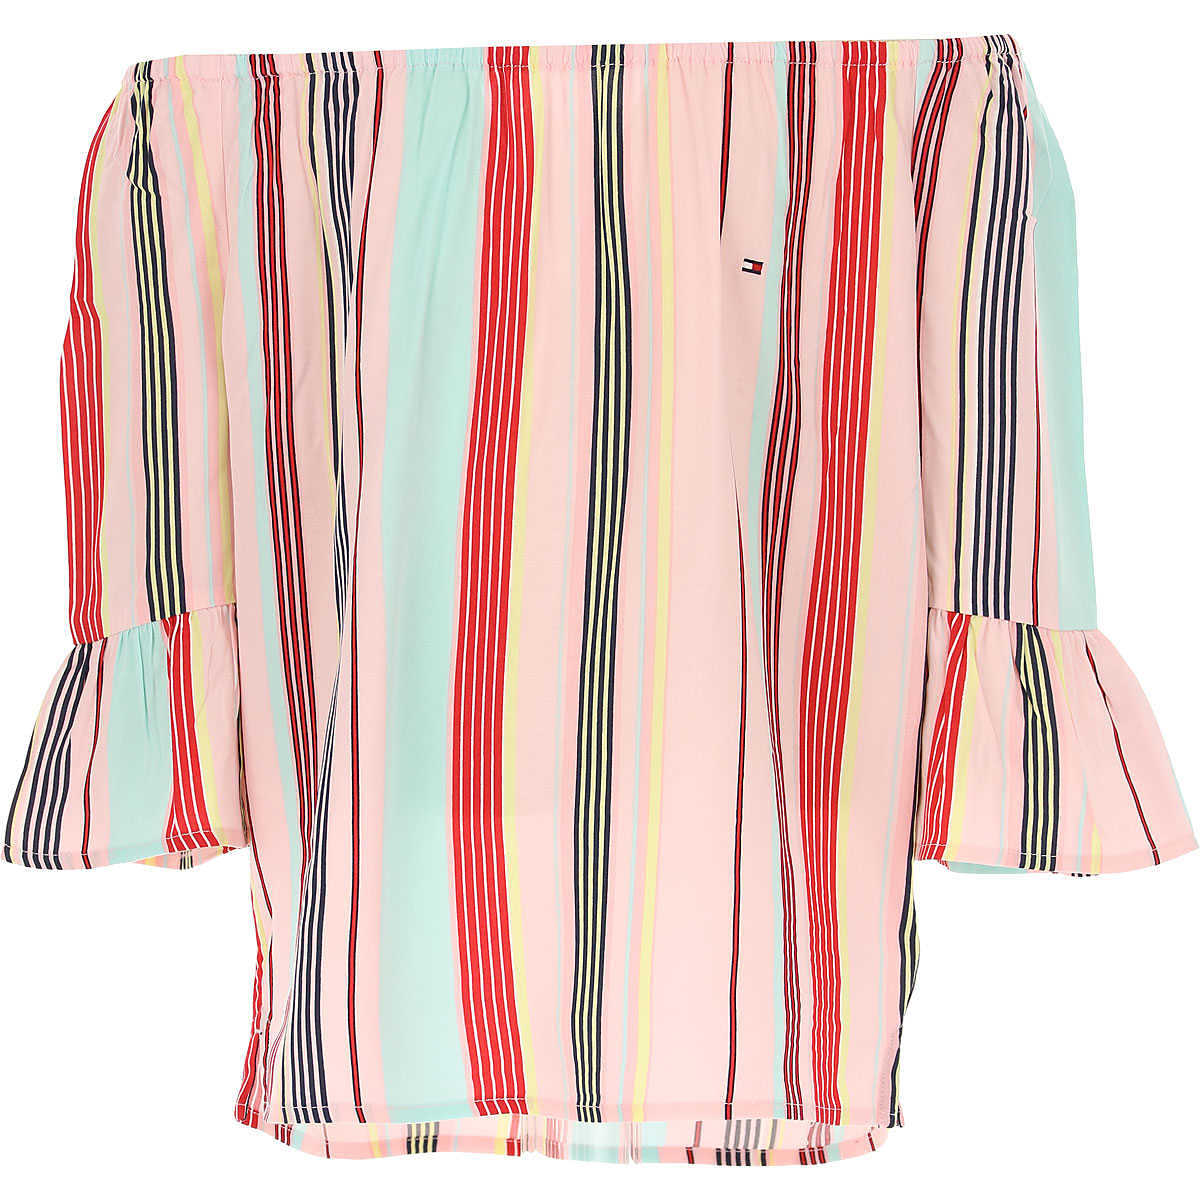 Tommy Hilfiger Tops On Sale Pink UK - GOOFASH - Womens TOPS